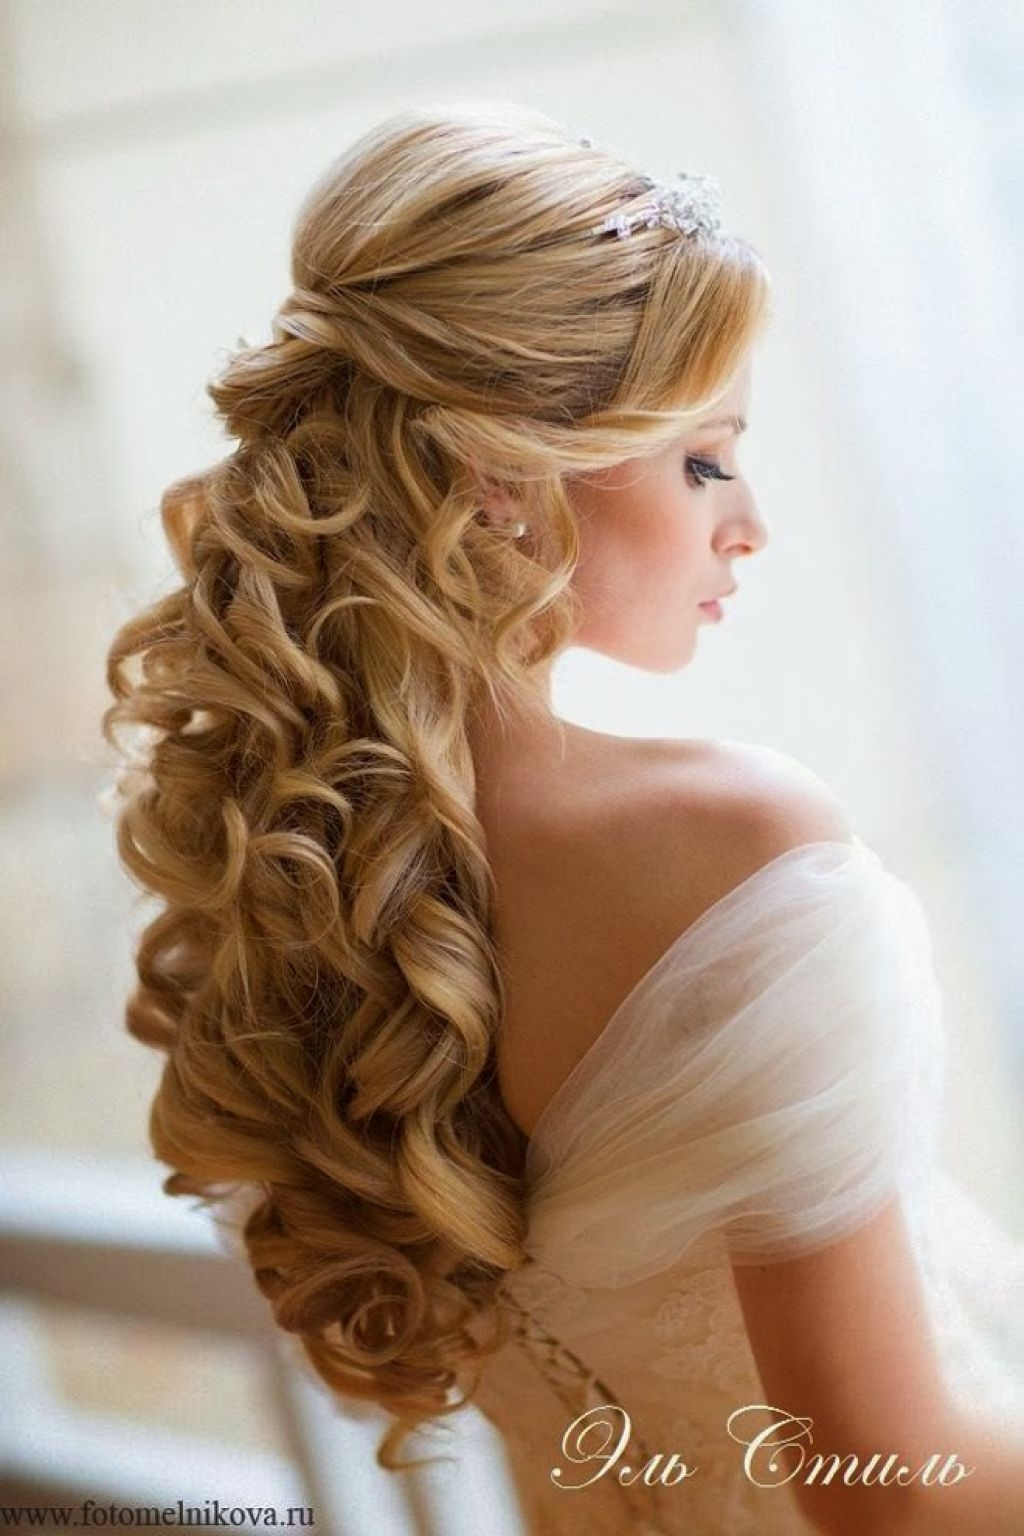 Easy Wedding Half Updo Hairstyle With Curls Bridal Cute Formal Throughout Wedding Half Updo Hairstyles (View 6 of 15)